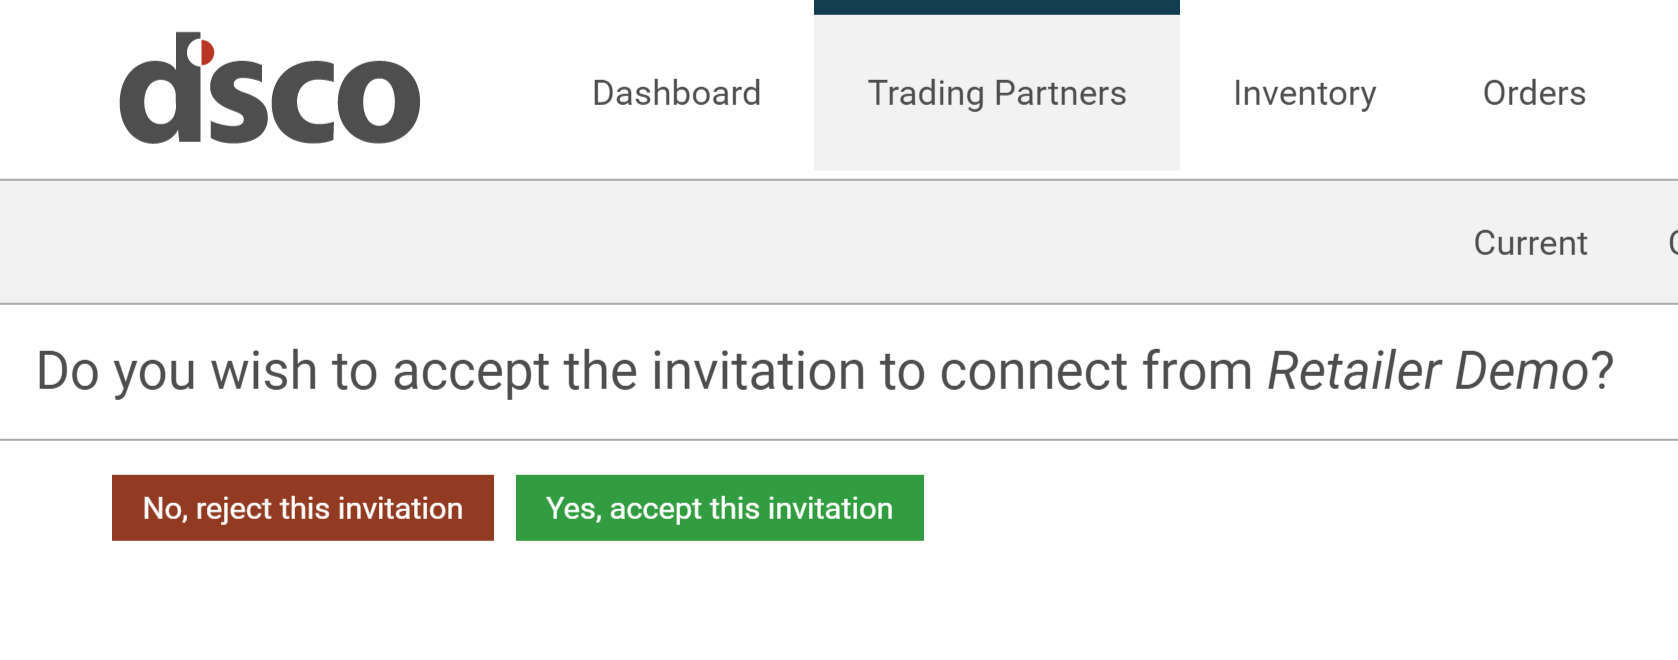 Accepting your invitation dsco support select yes accept this invitation if you wish to do business with the trading partner who invited you to the dsco platform once accepted you will be stopboris Image collections